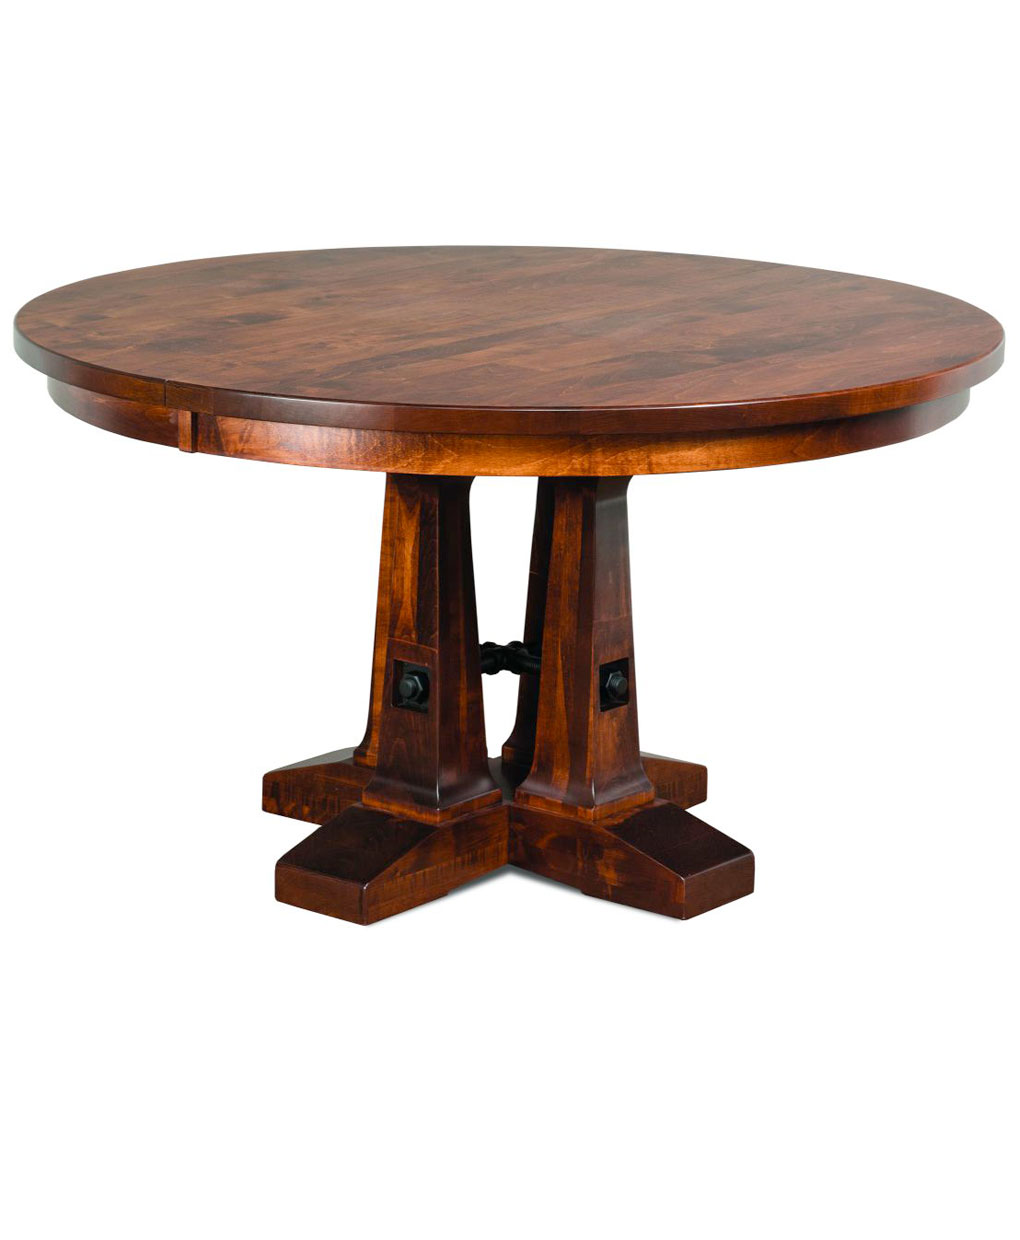 Round Kitchen Tables: Vienna Round Dining Table